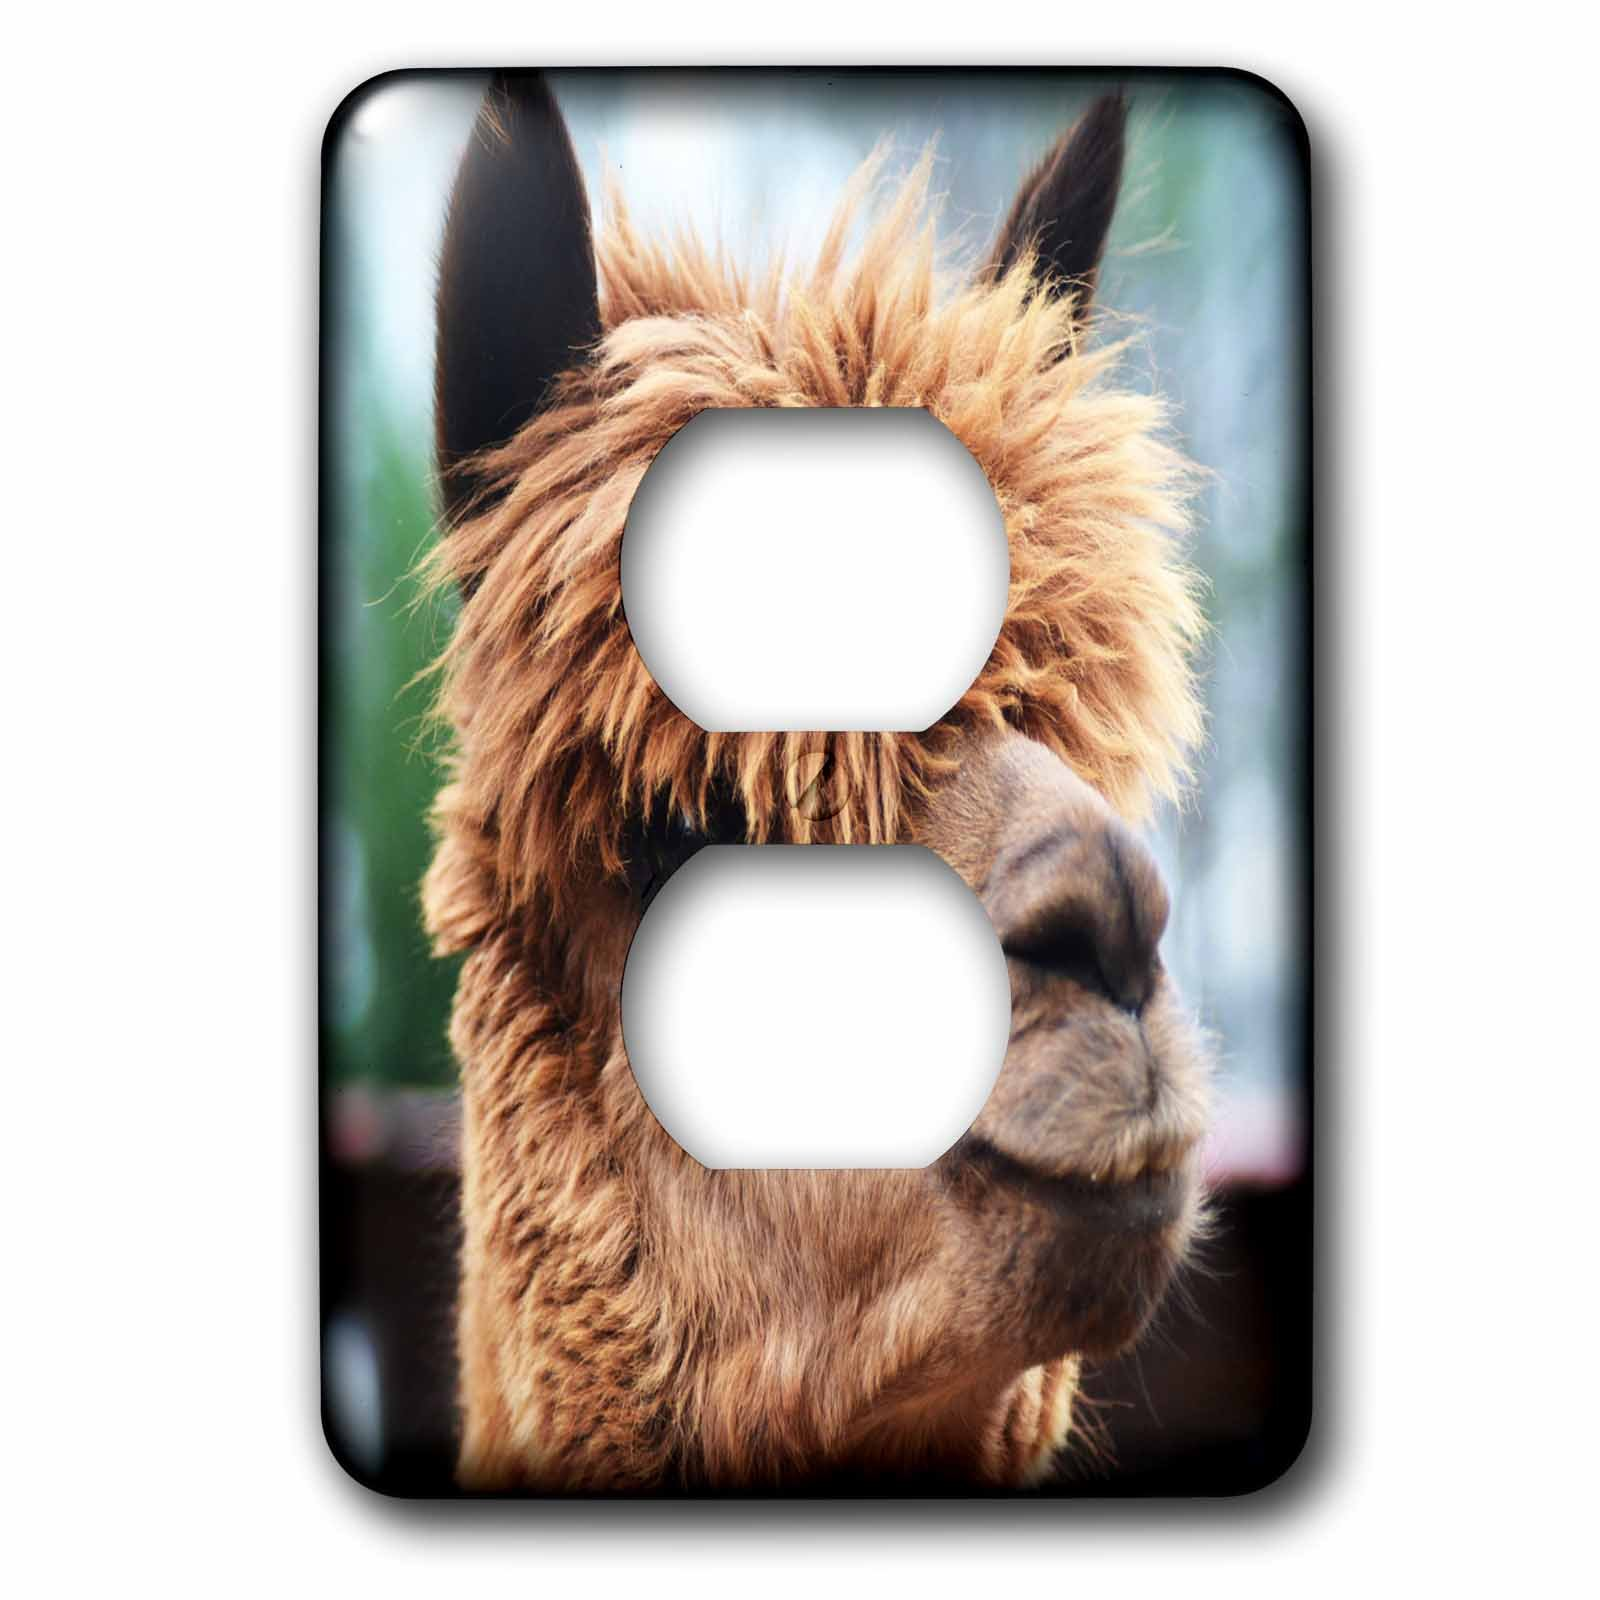 3dRose WhiteOaks Photography and Artwork - Lamas - Lamas Profile is a photo of a lama showing off its profile - Light Switch Covers - 2 plug outlet cover (lsp_265336_6)